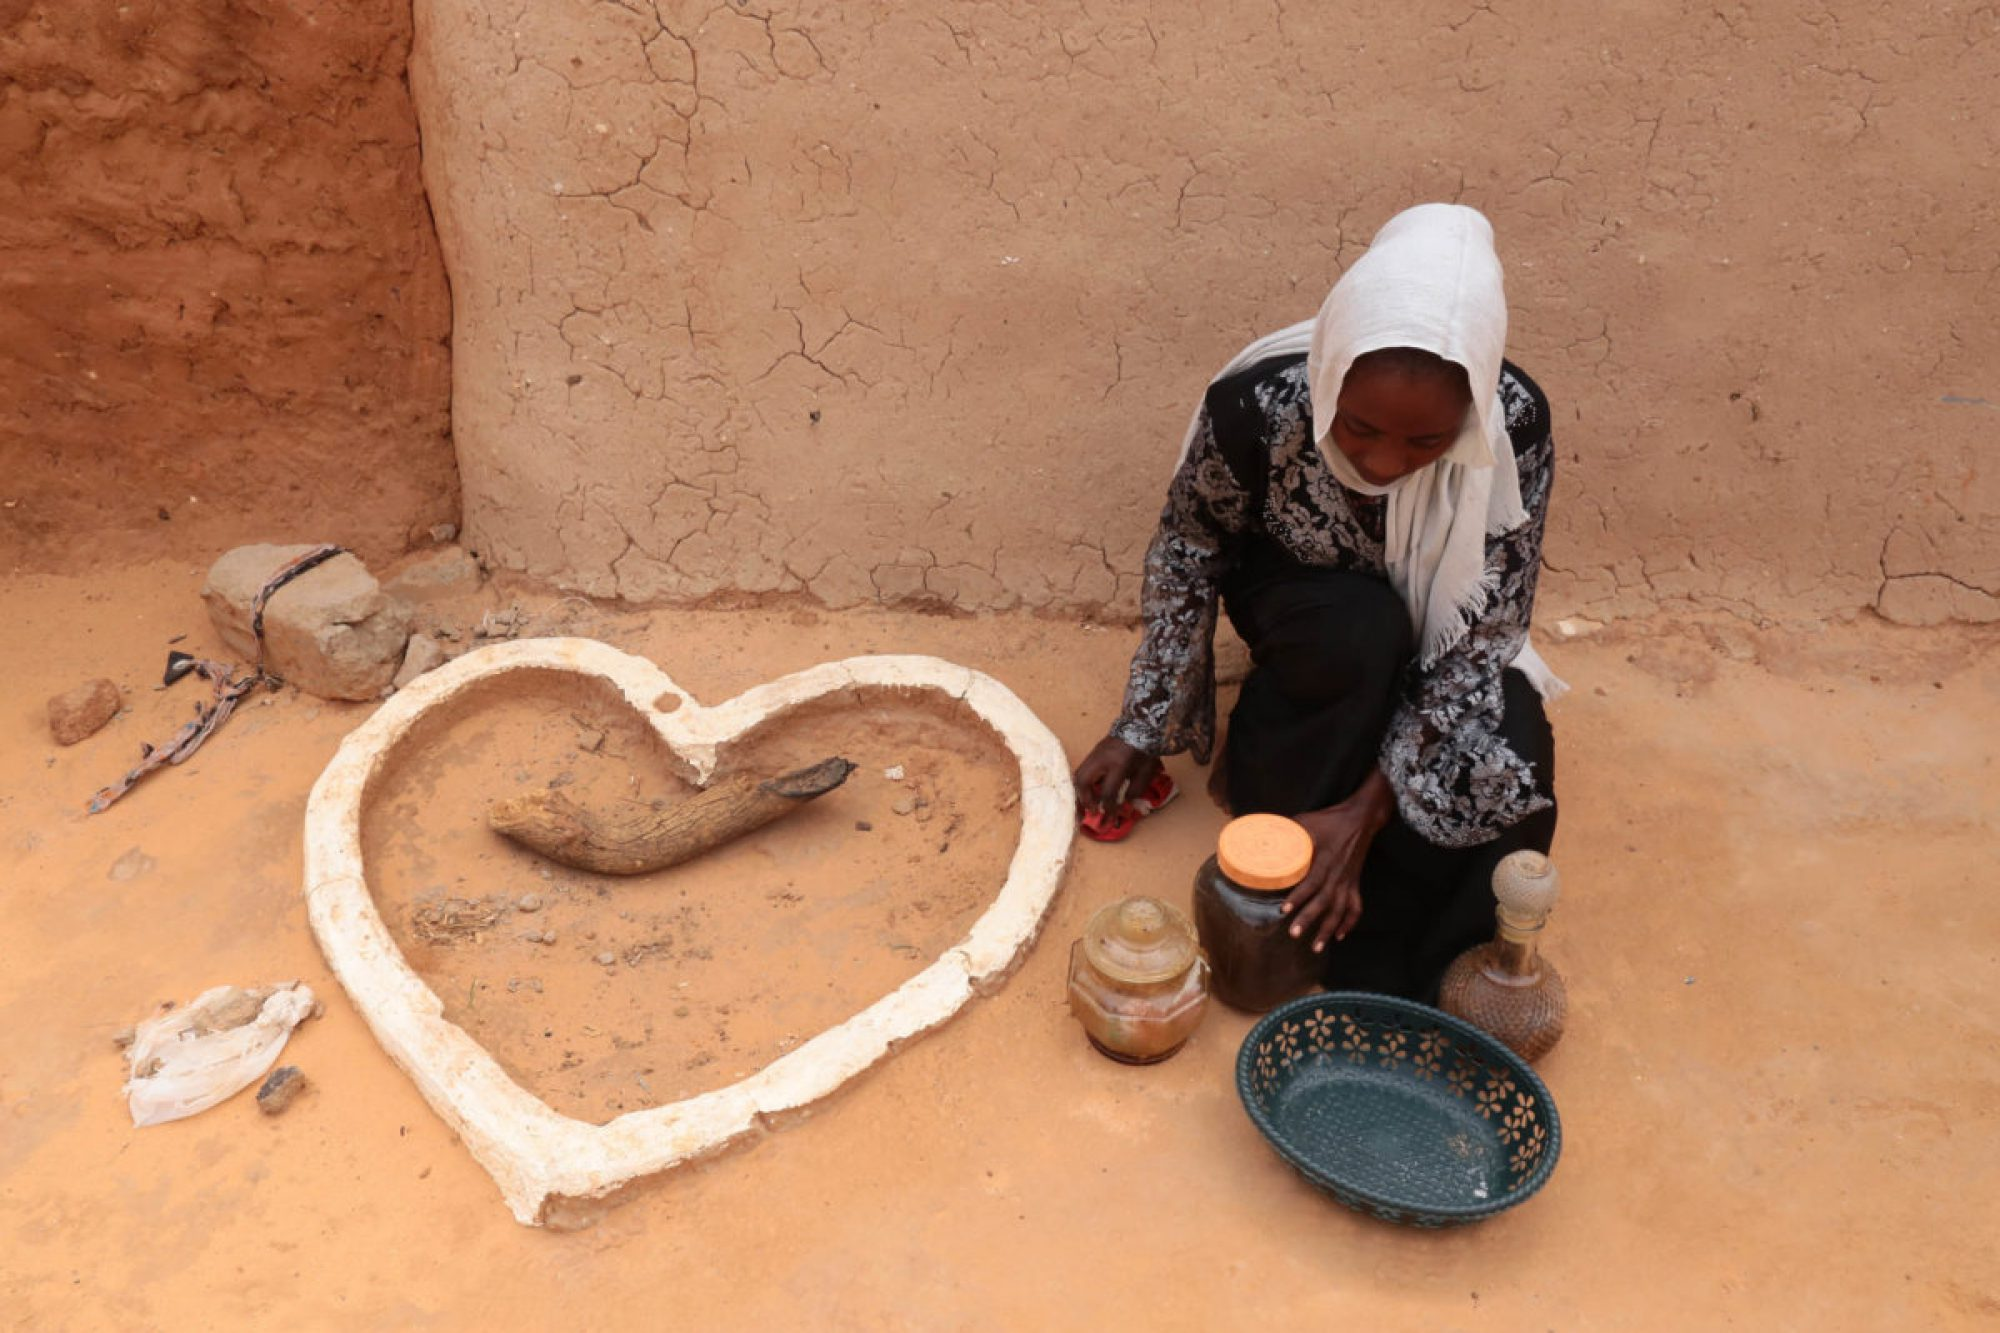 Girl in the Touloum refugee camp, Chad.